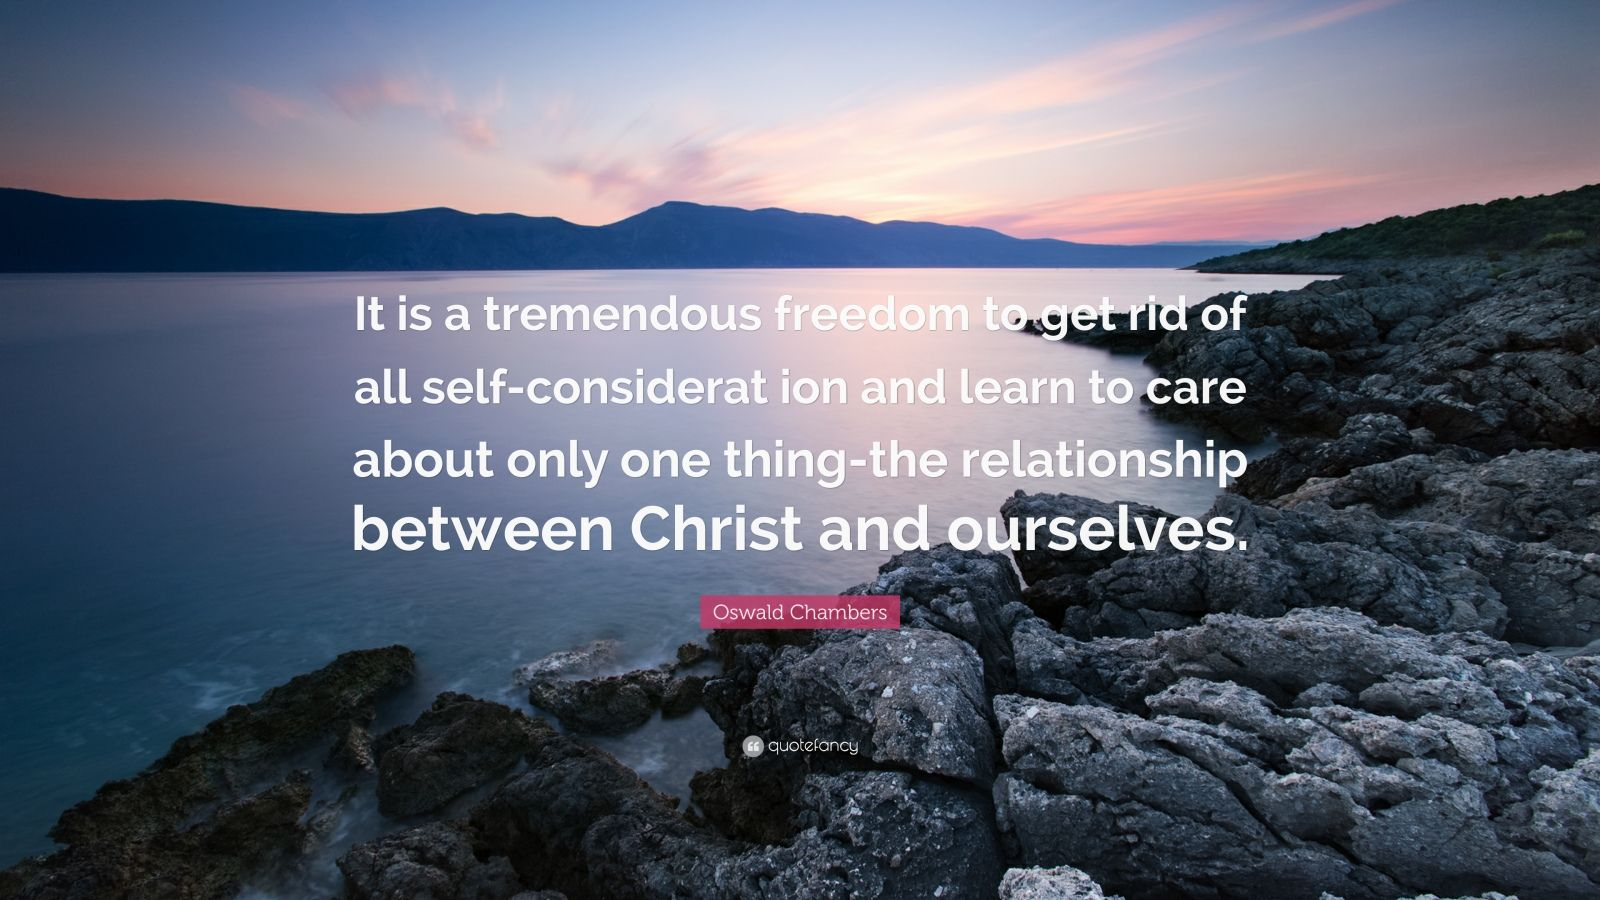 """Oswald Chambers Quote: """"It is a tremendous freedom to get rid of all self-considerat ion and learn to care about only one thing-the relationship between Christ and ourselves."""""""